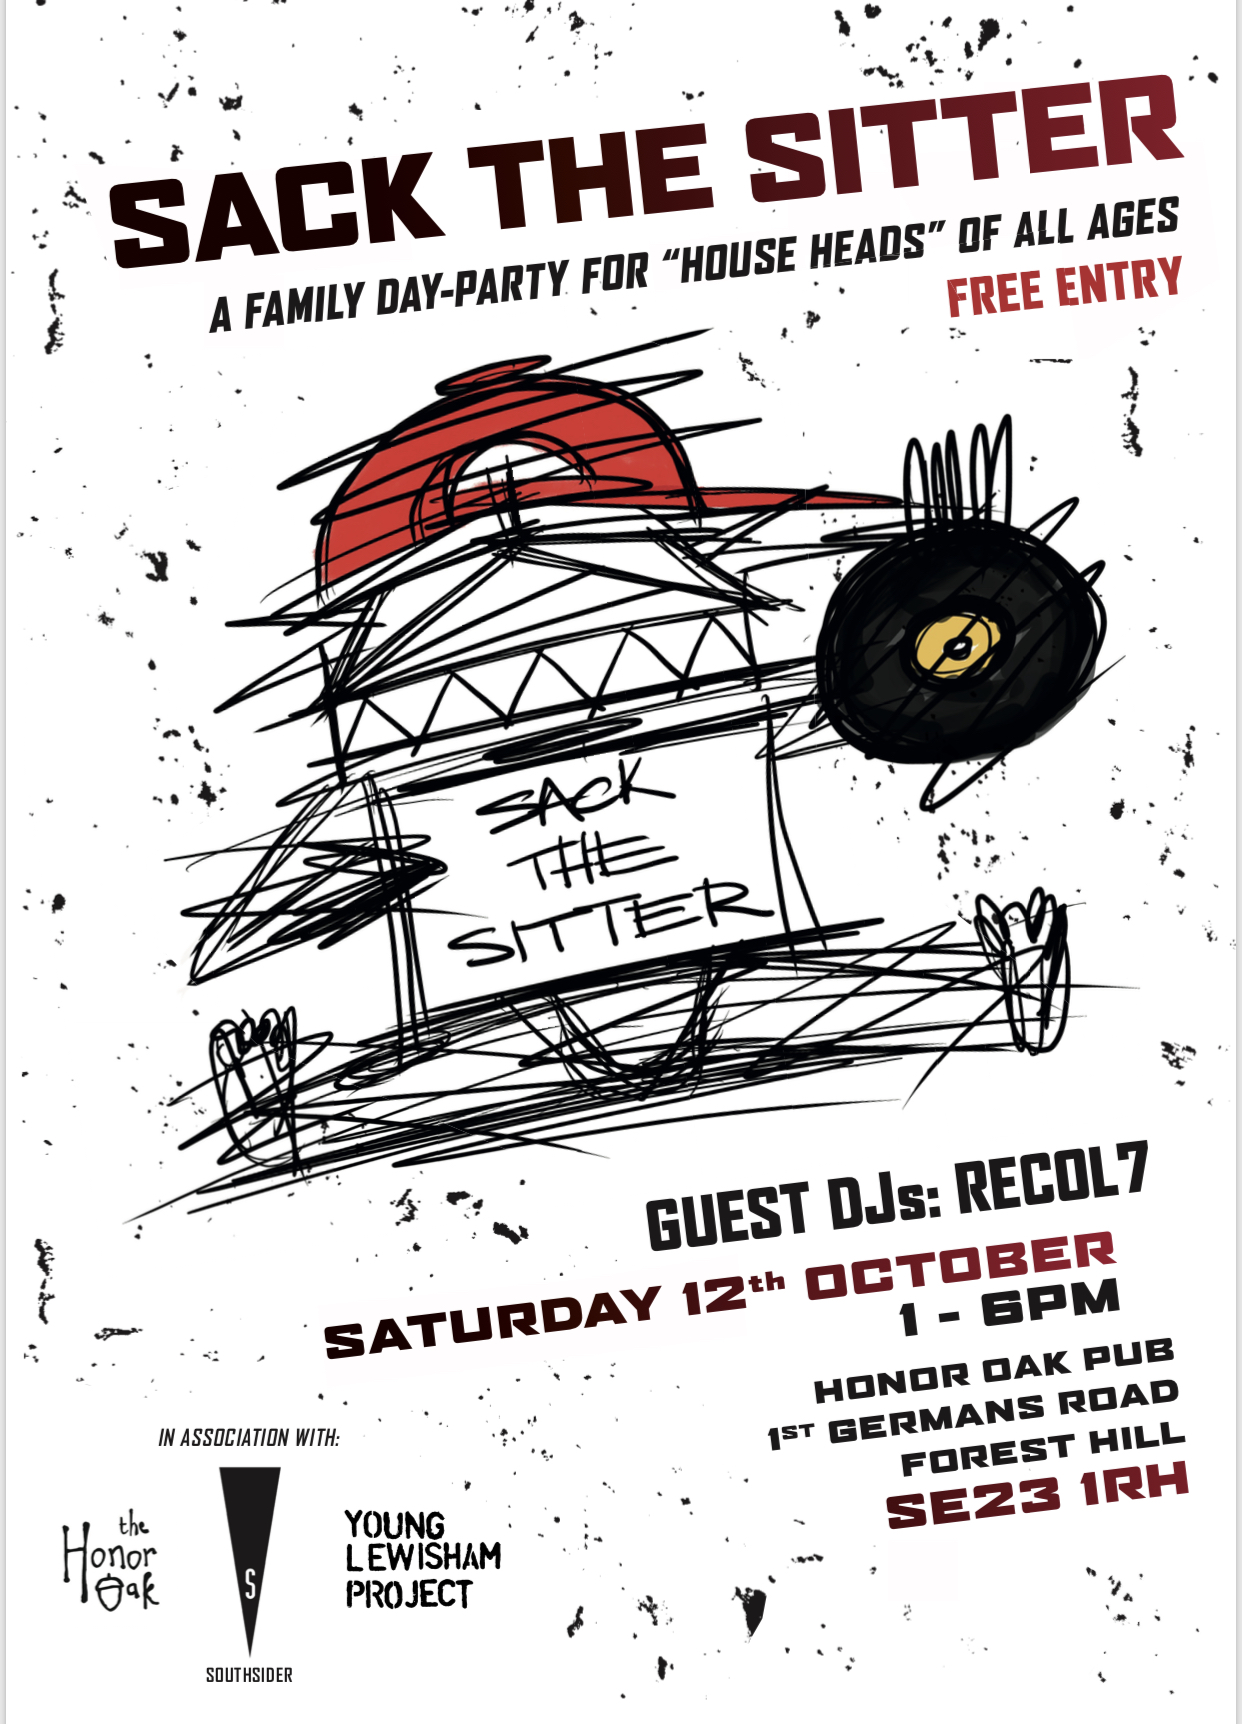 sack the sitter event south london club